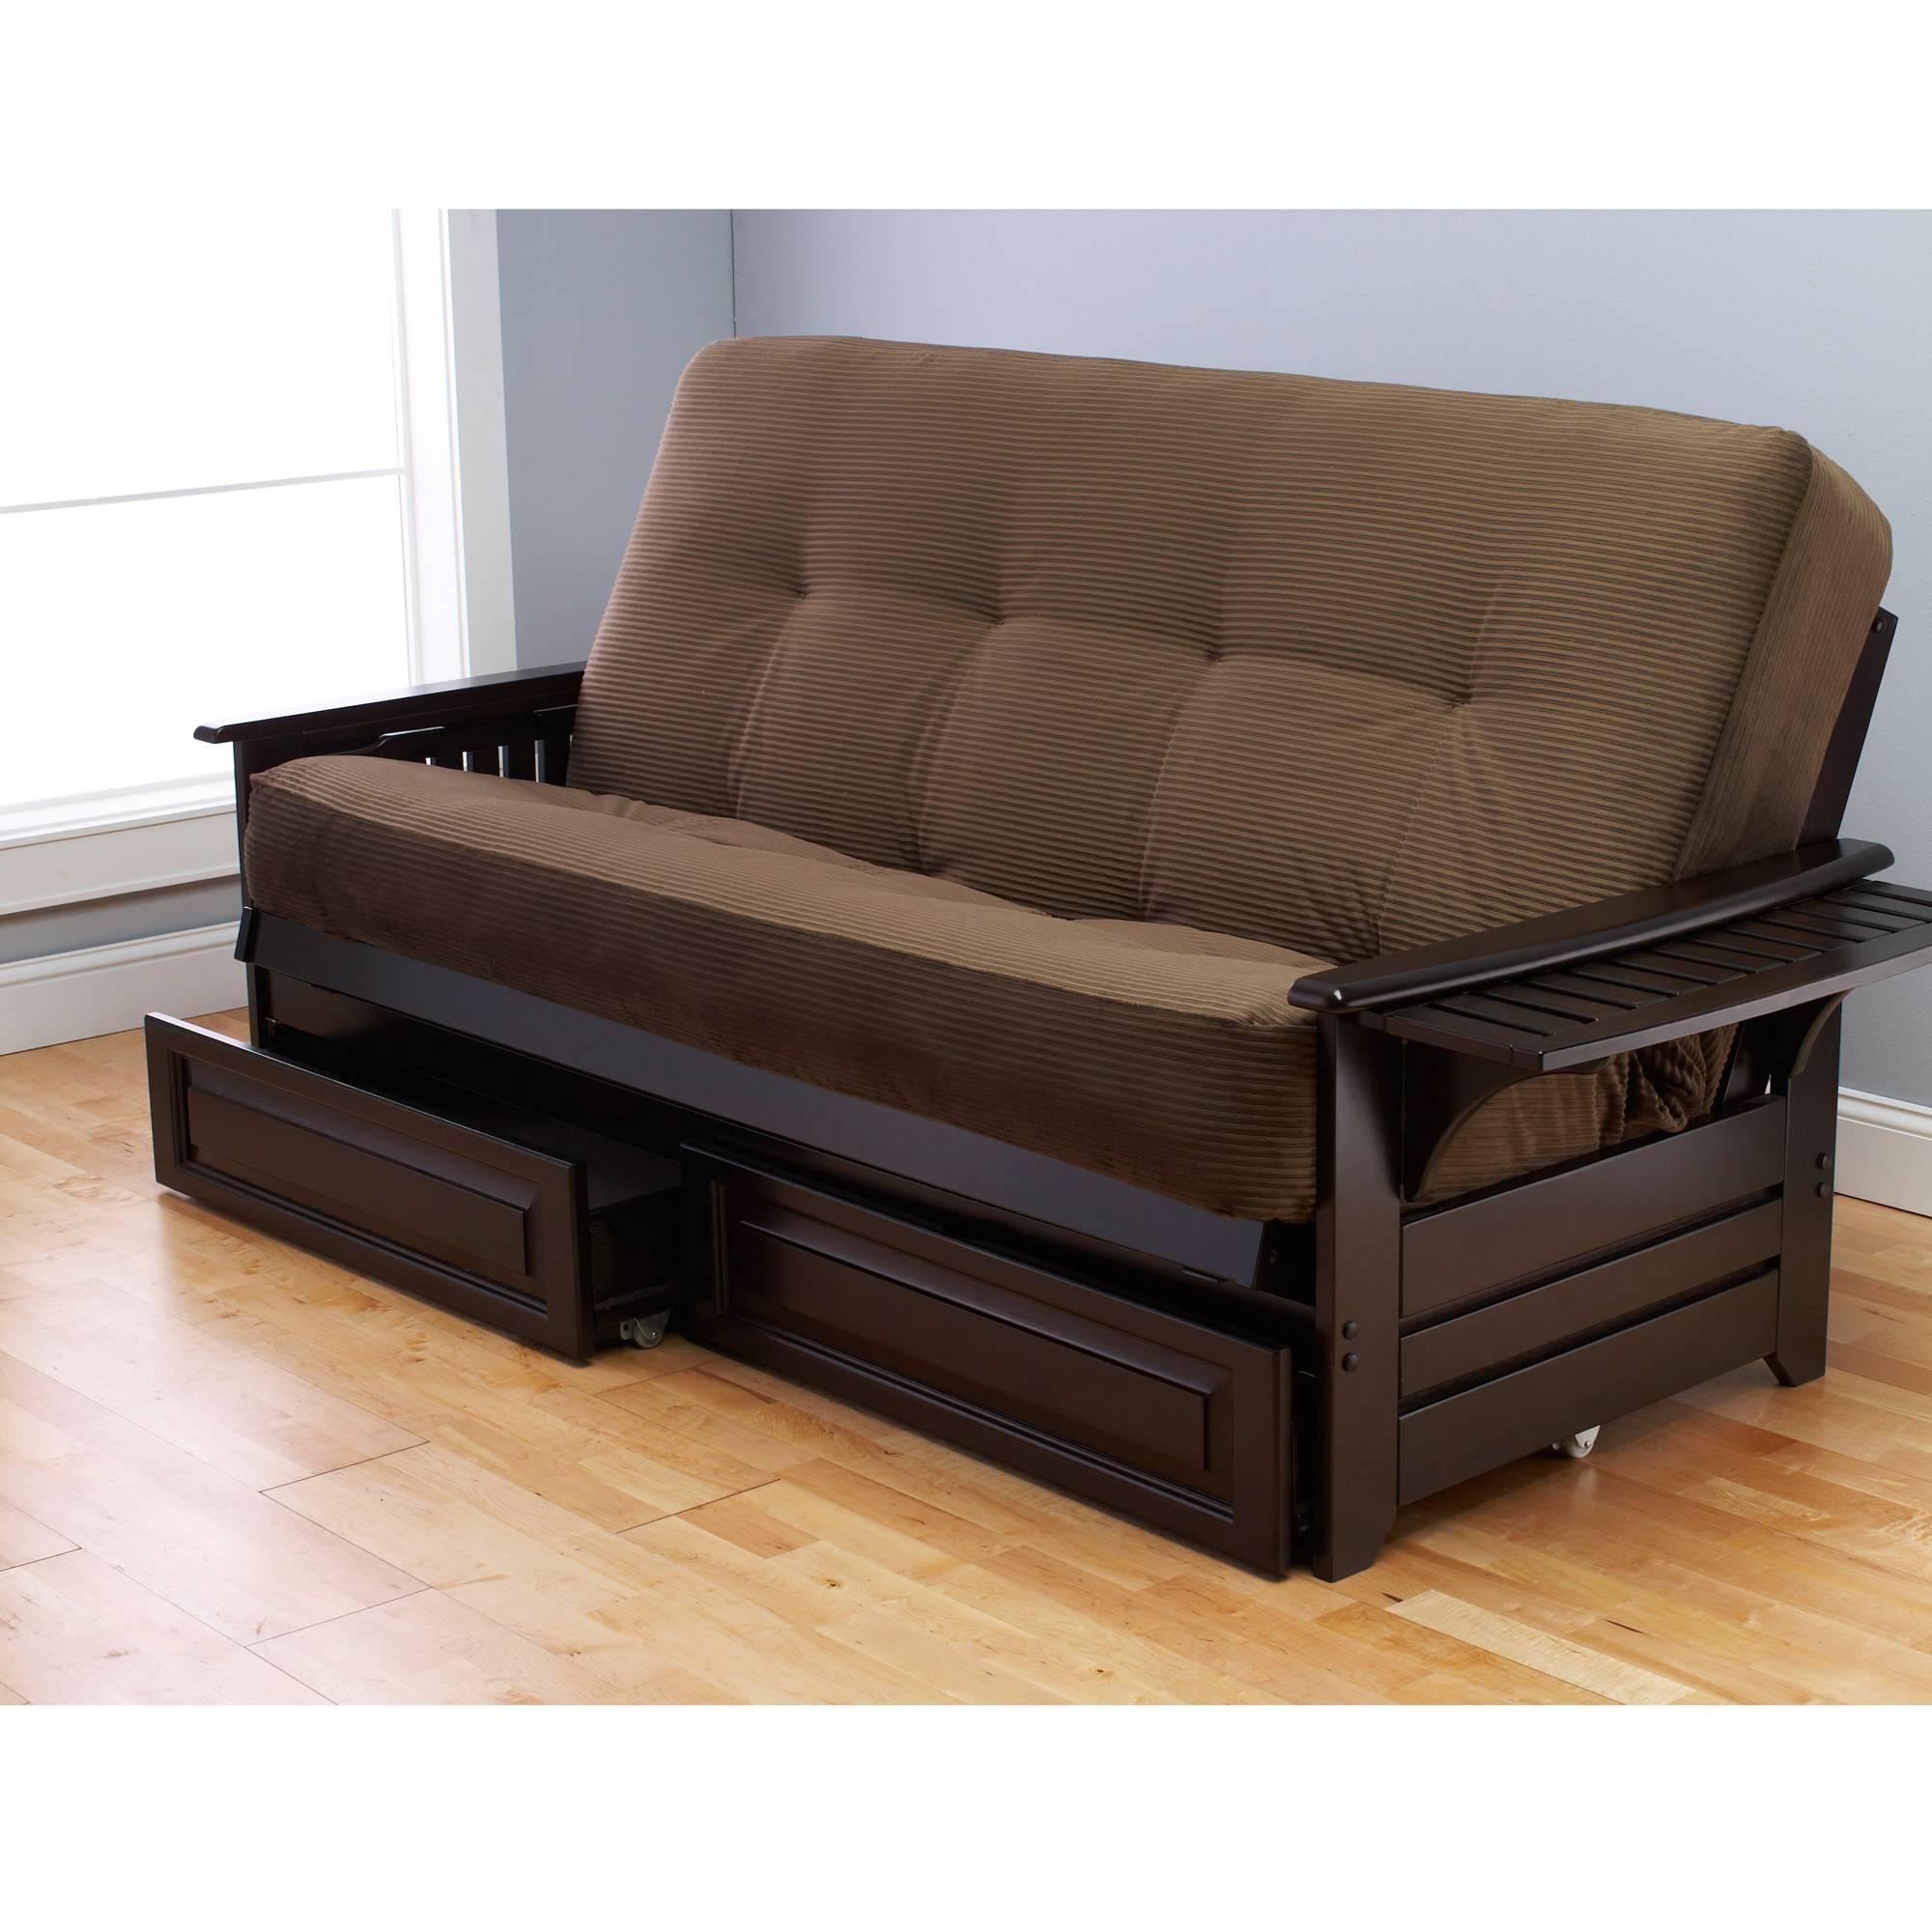 Futons Style Futon Sofa Bed Sofa Beds For Sale King Size Beds with regard to Fulton Sofa Beds (Image 21 of 30)